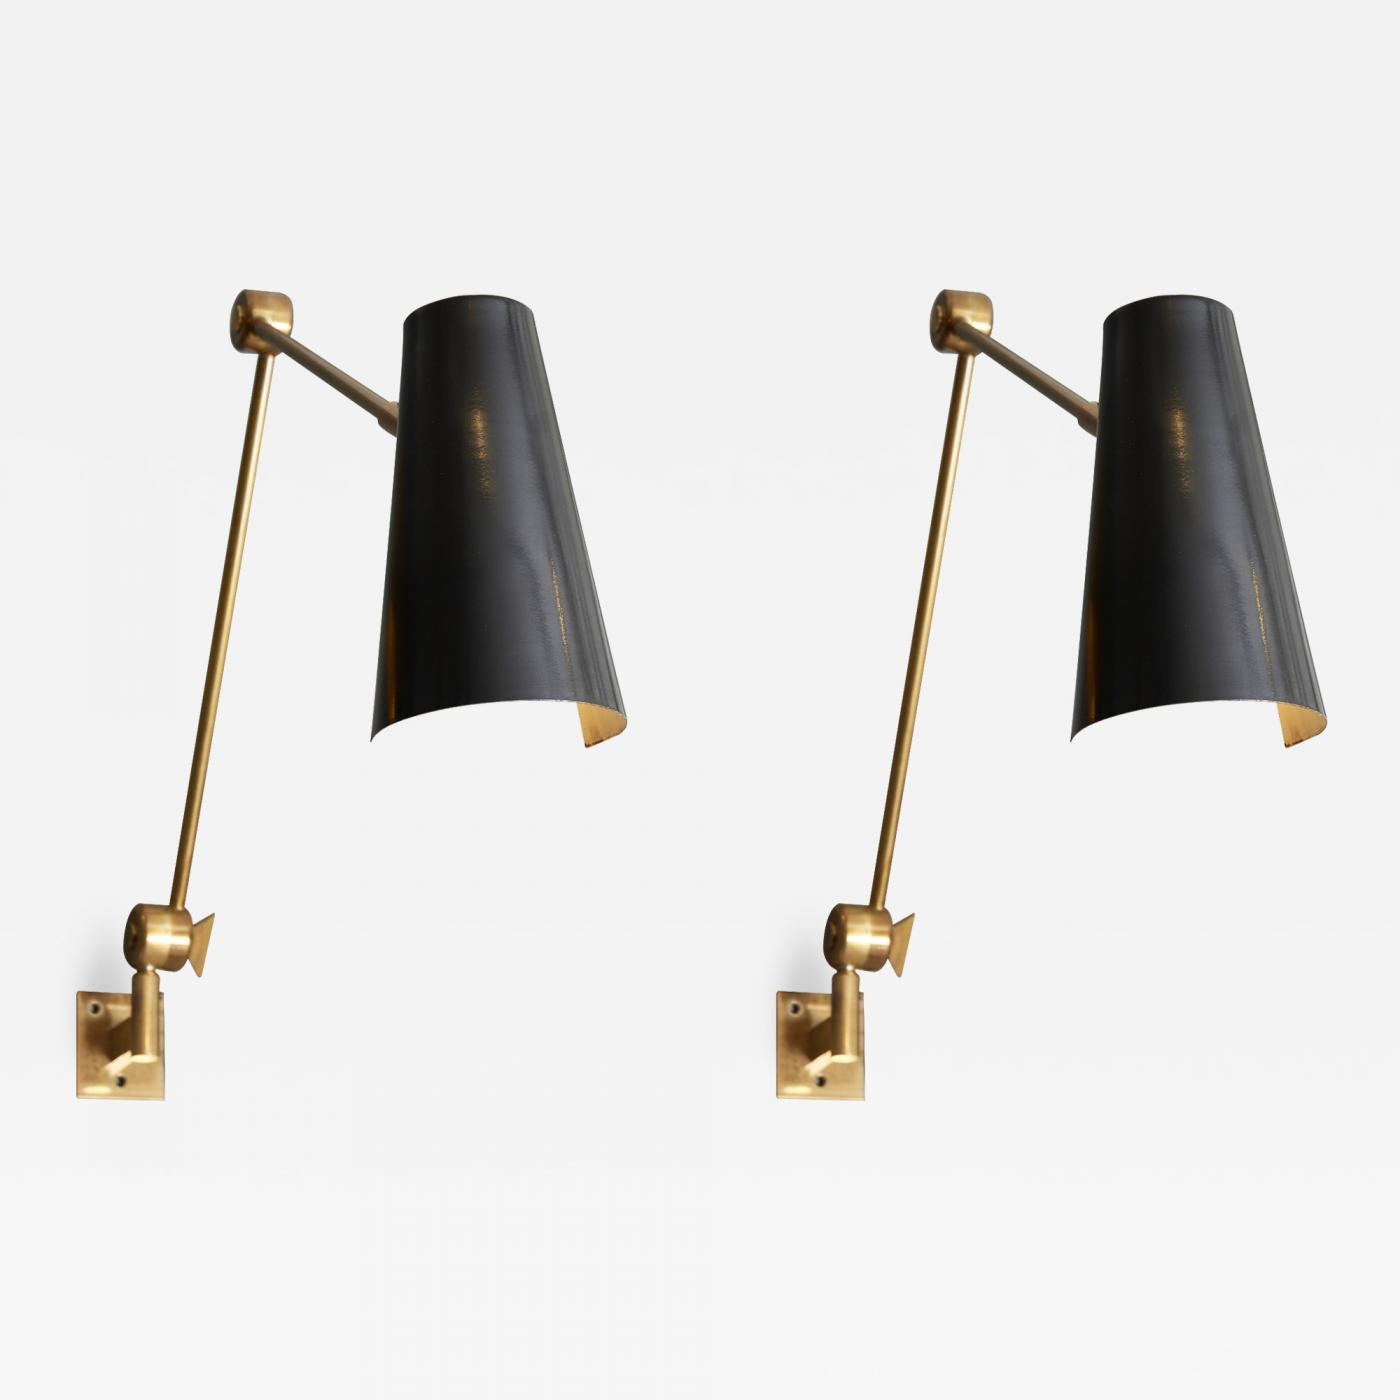 Image of: Stilnovo Pair Of Stilnovo Black Cones Wall Sconces